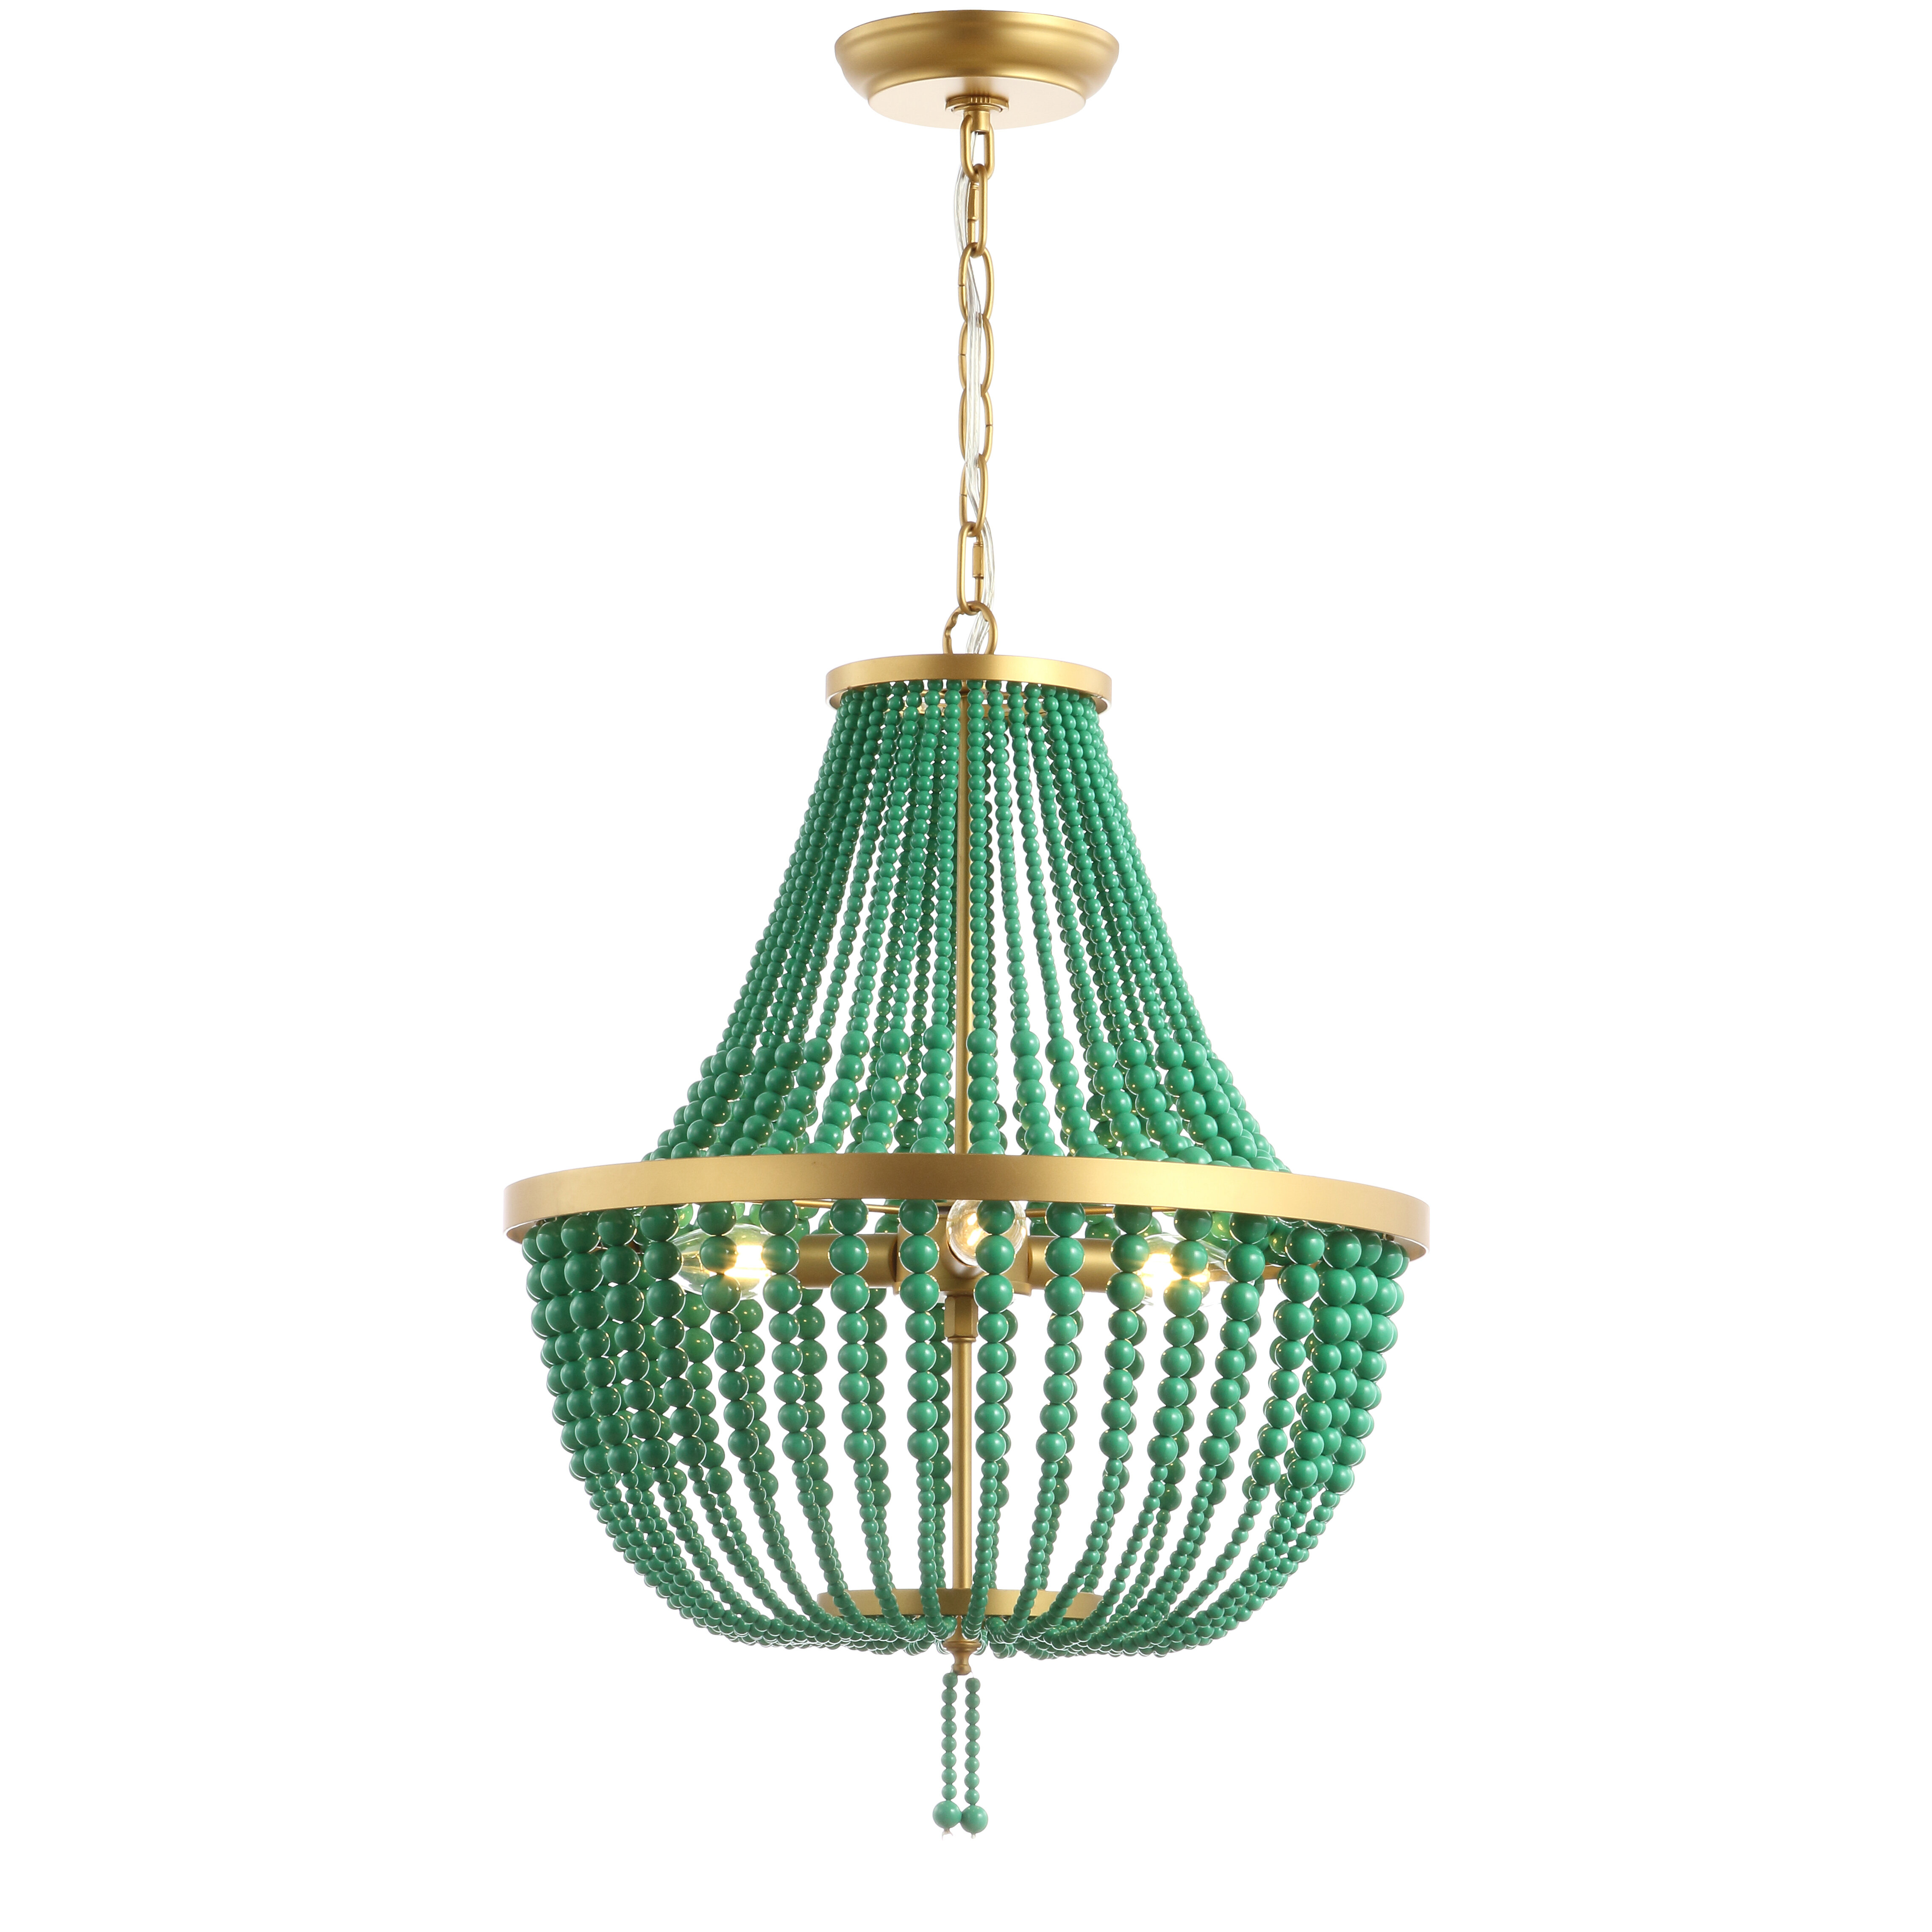 Asian Inspired Chandeliers   Wayfair Intended For Duron 5 Light Empire Chandeliers (View 7 of 30)